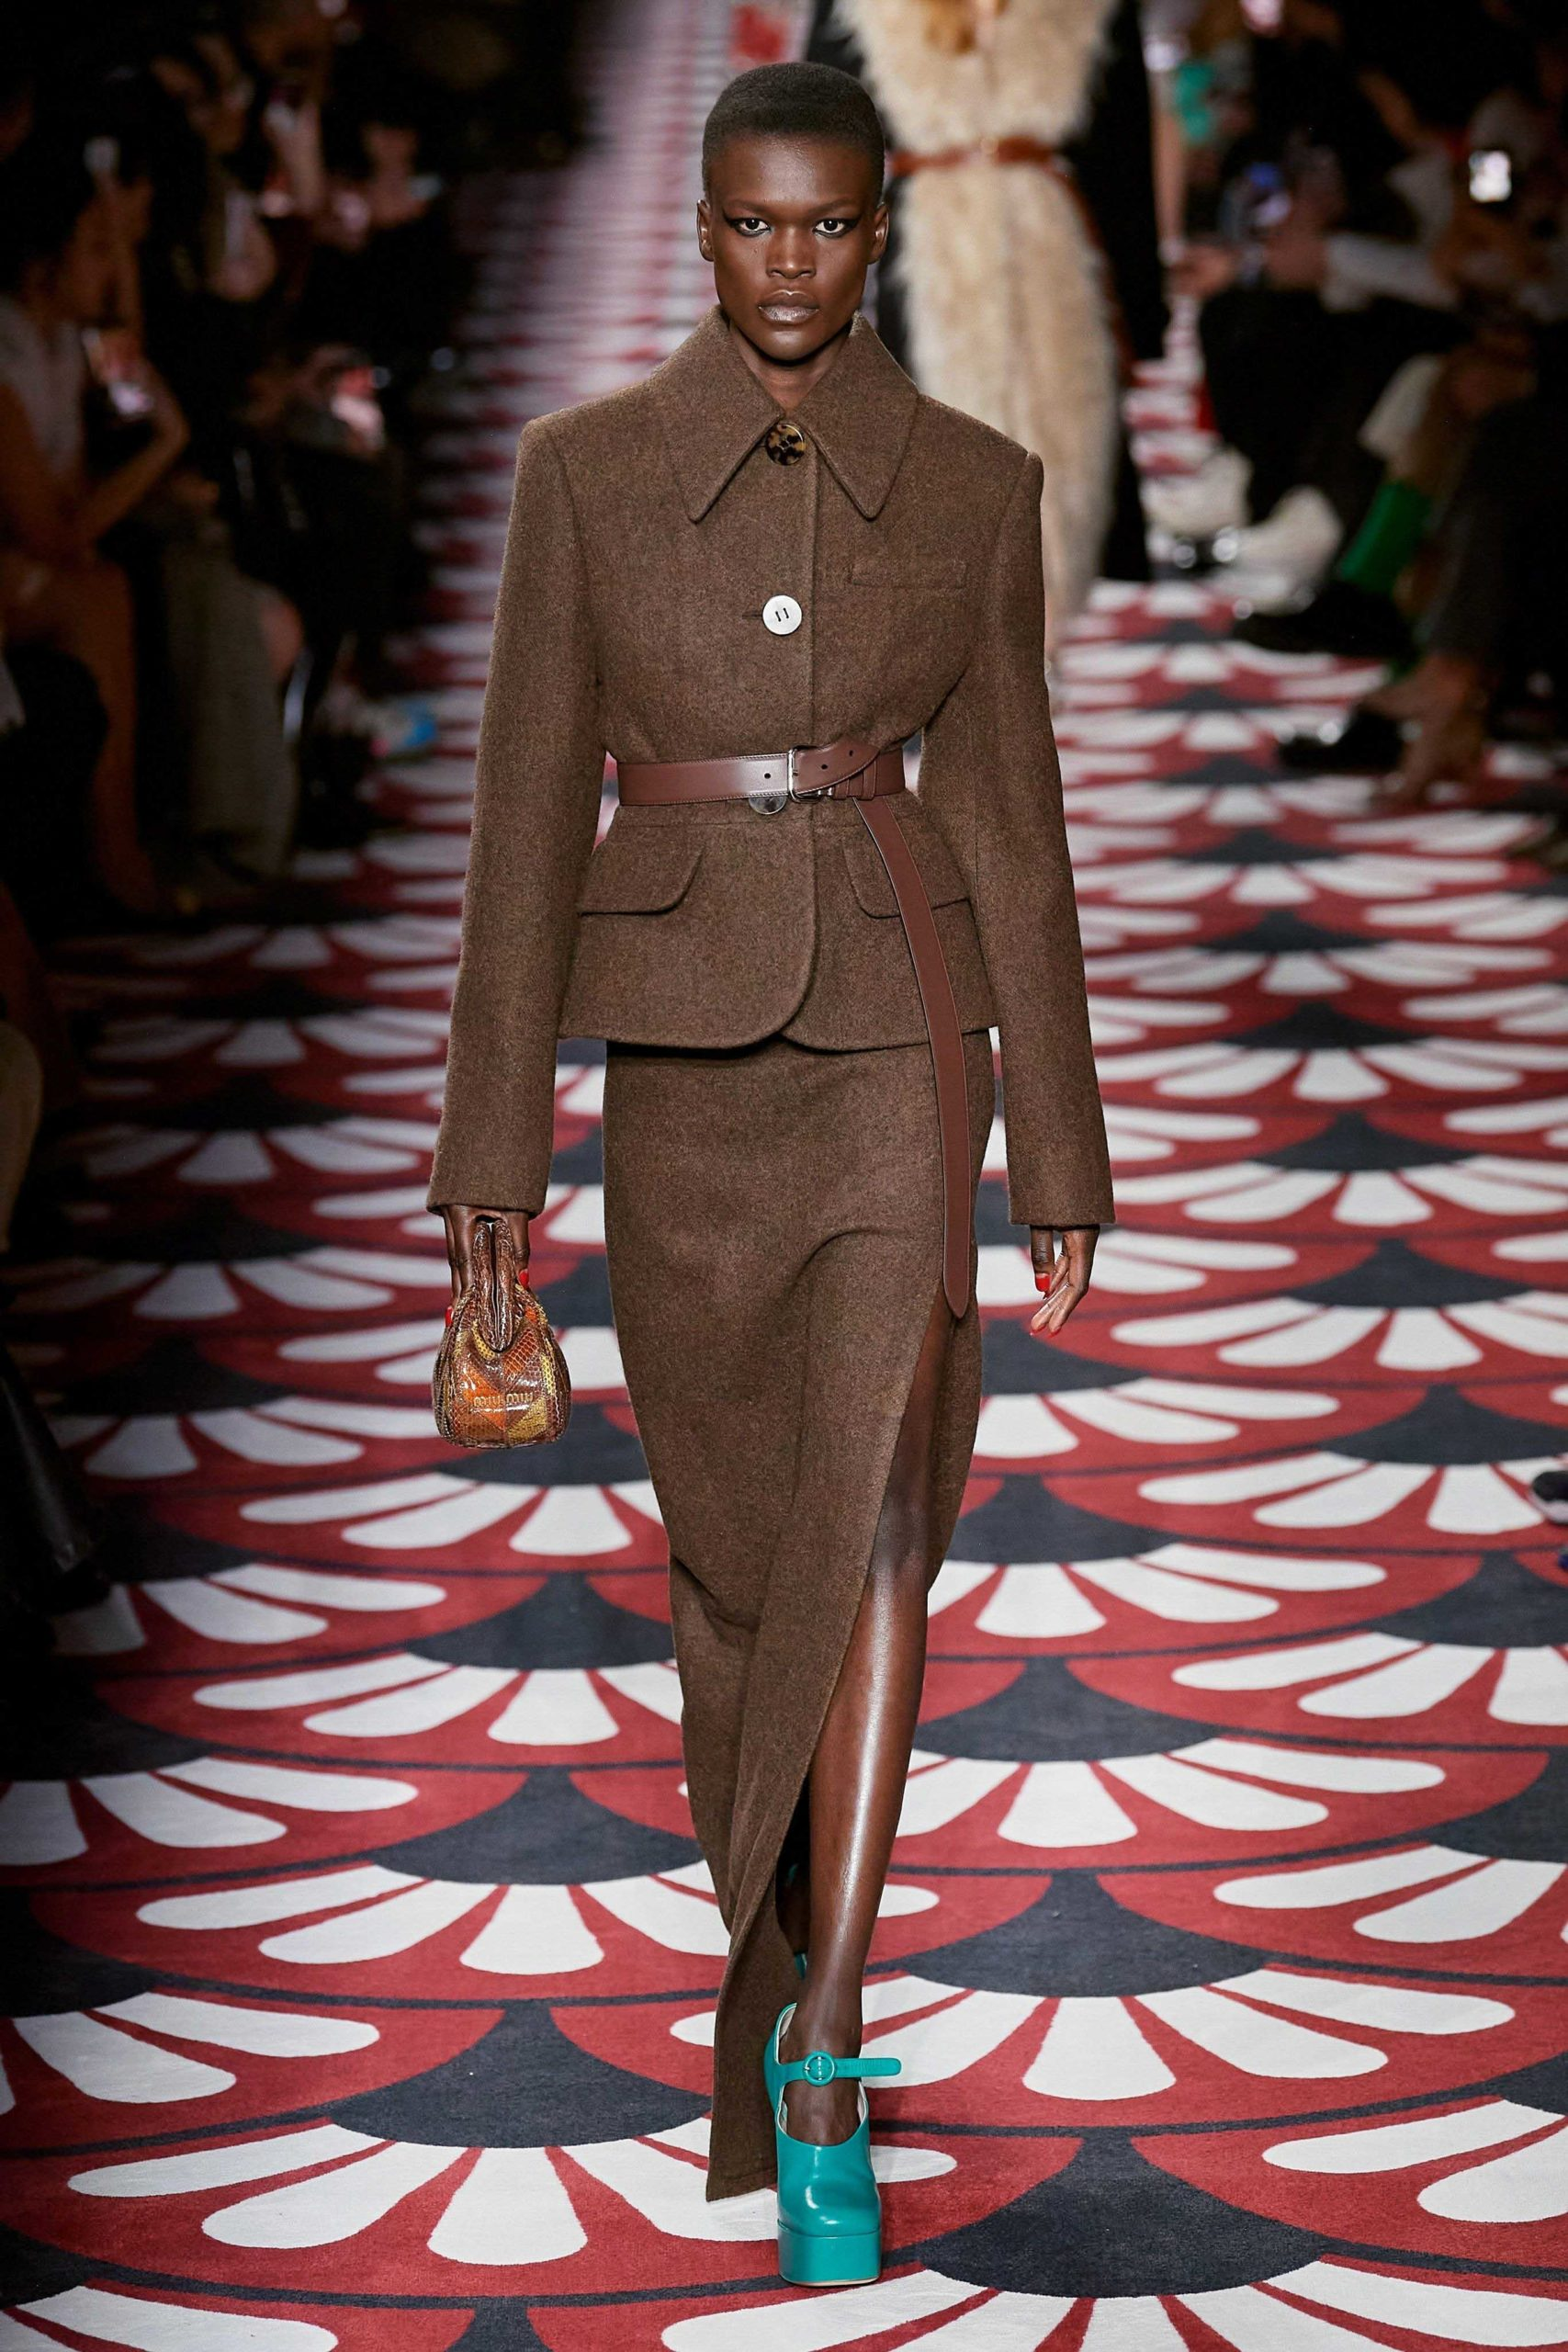 Michael Kors Fall 2020 trends runway coverage Ready To Wear Vogue tailleur jupe skirt suit